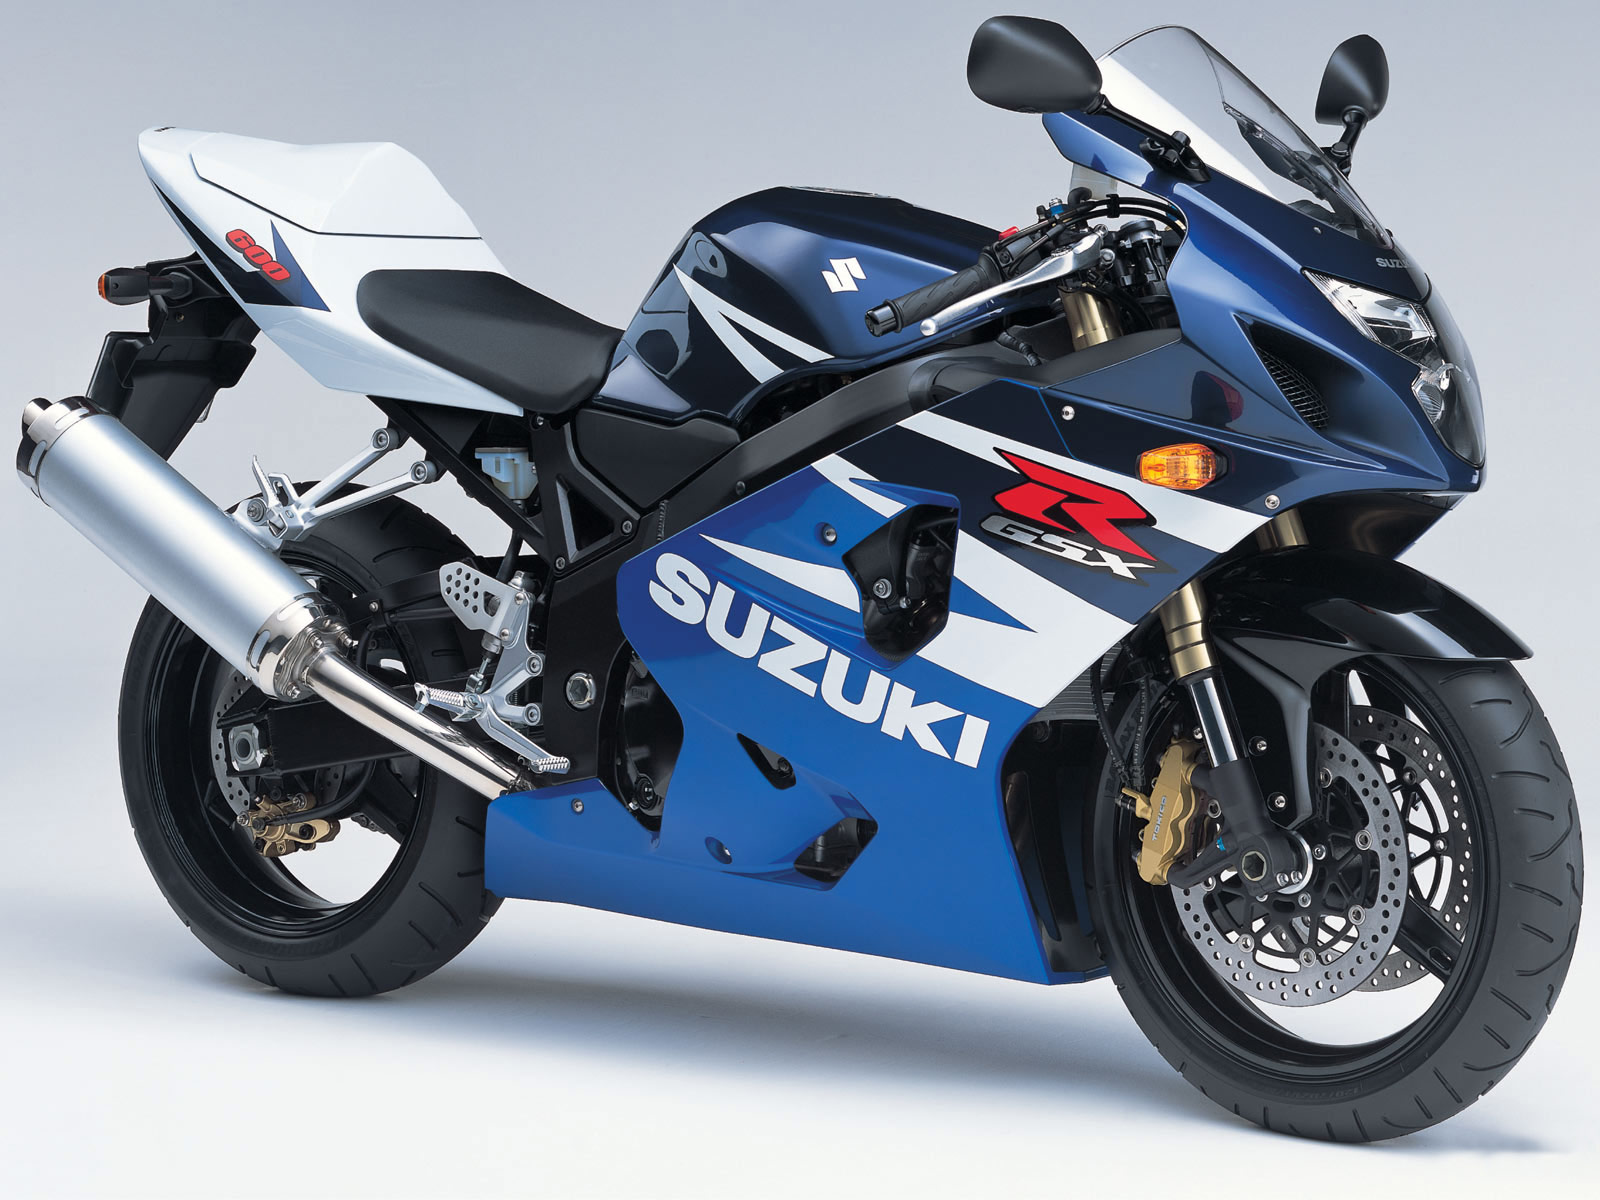 suzuki gsx r 600 2004 datasheet service manual and datasheet for suzuki motorcycles. Black Bedroom Furniture Sets. Home Design Ideas